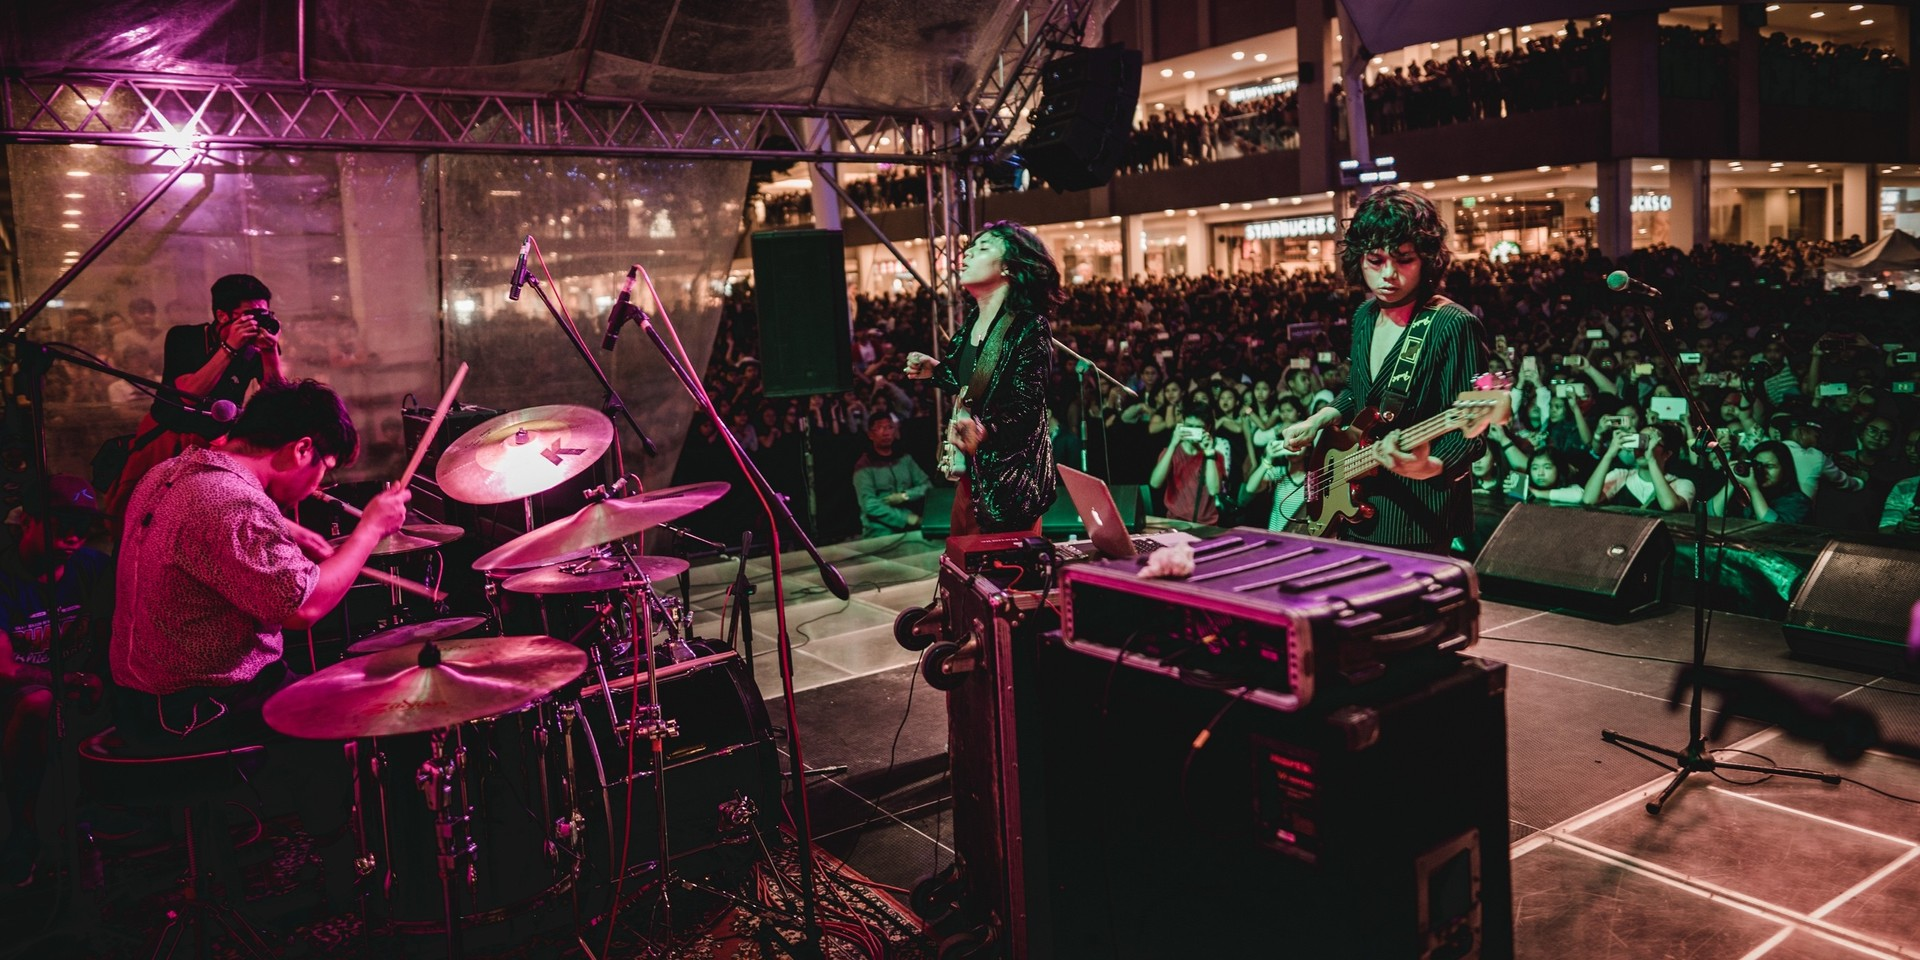 IV of Spades take us back to the crazy fun world of Filipino mall shows